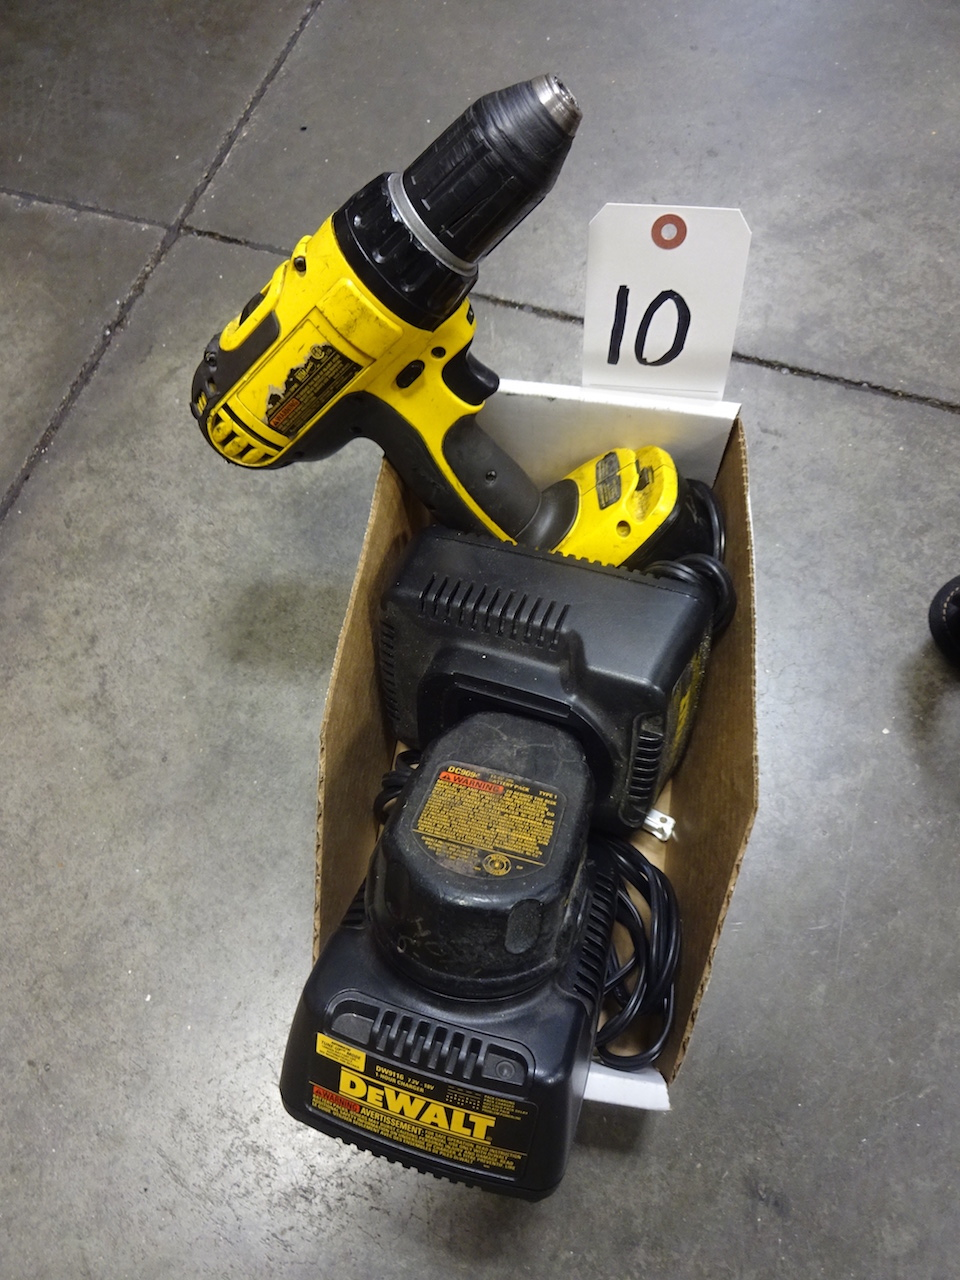 Lot 10 - Dewalt Cordless Drill, with (2) Batteries & (2) Chargers